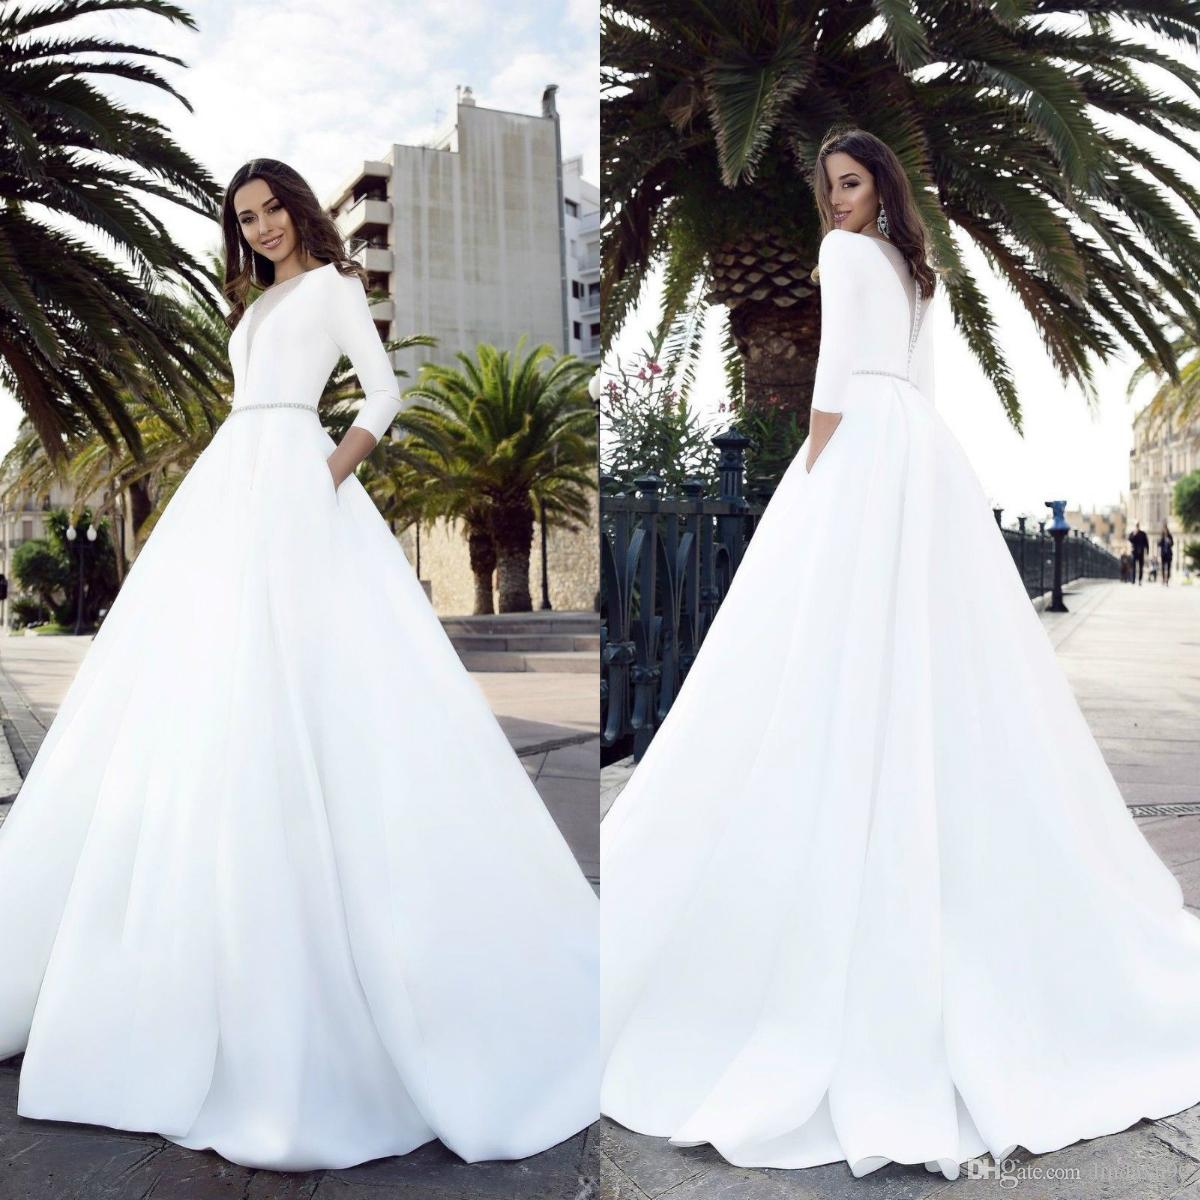 b1432d8b47bf Discount 2019 Latest Design Pockets Satin Wedding Dresses 3/4 Long Sleeve Bridal  Dress Sweep Train Country Style Bridal Gowns Strapless Wedding Dresses ...